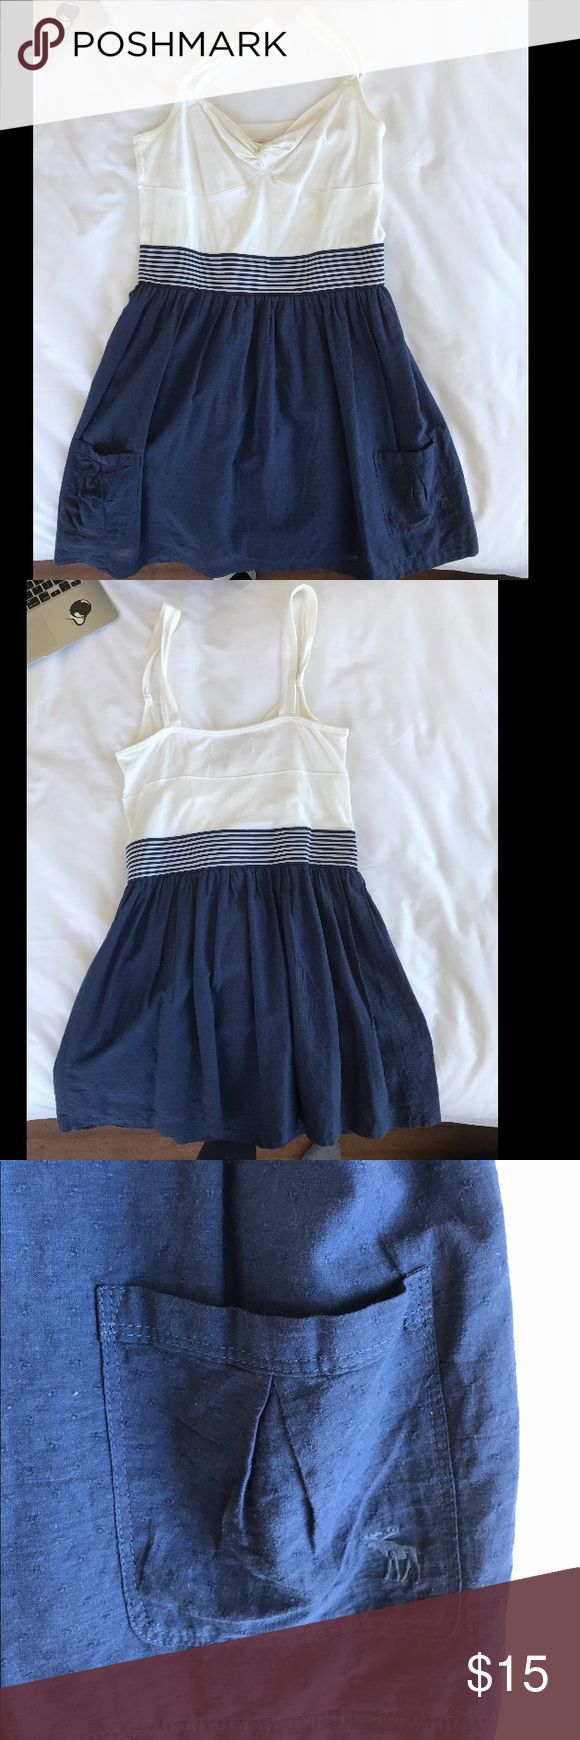 Abercrombie and fitch dress Dress is in great pre owned condition. It has two pockets on the bottoms sides of the dress. The white part is a very soft comfortable material. Great for going to the beach or dinner during the summer.  Make me an offer. Abercrombie & Fitch Dresses Mini